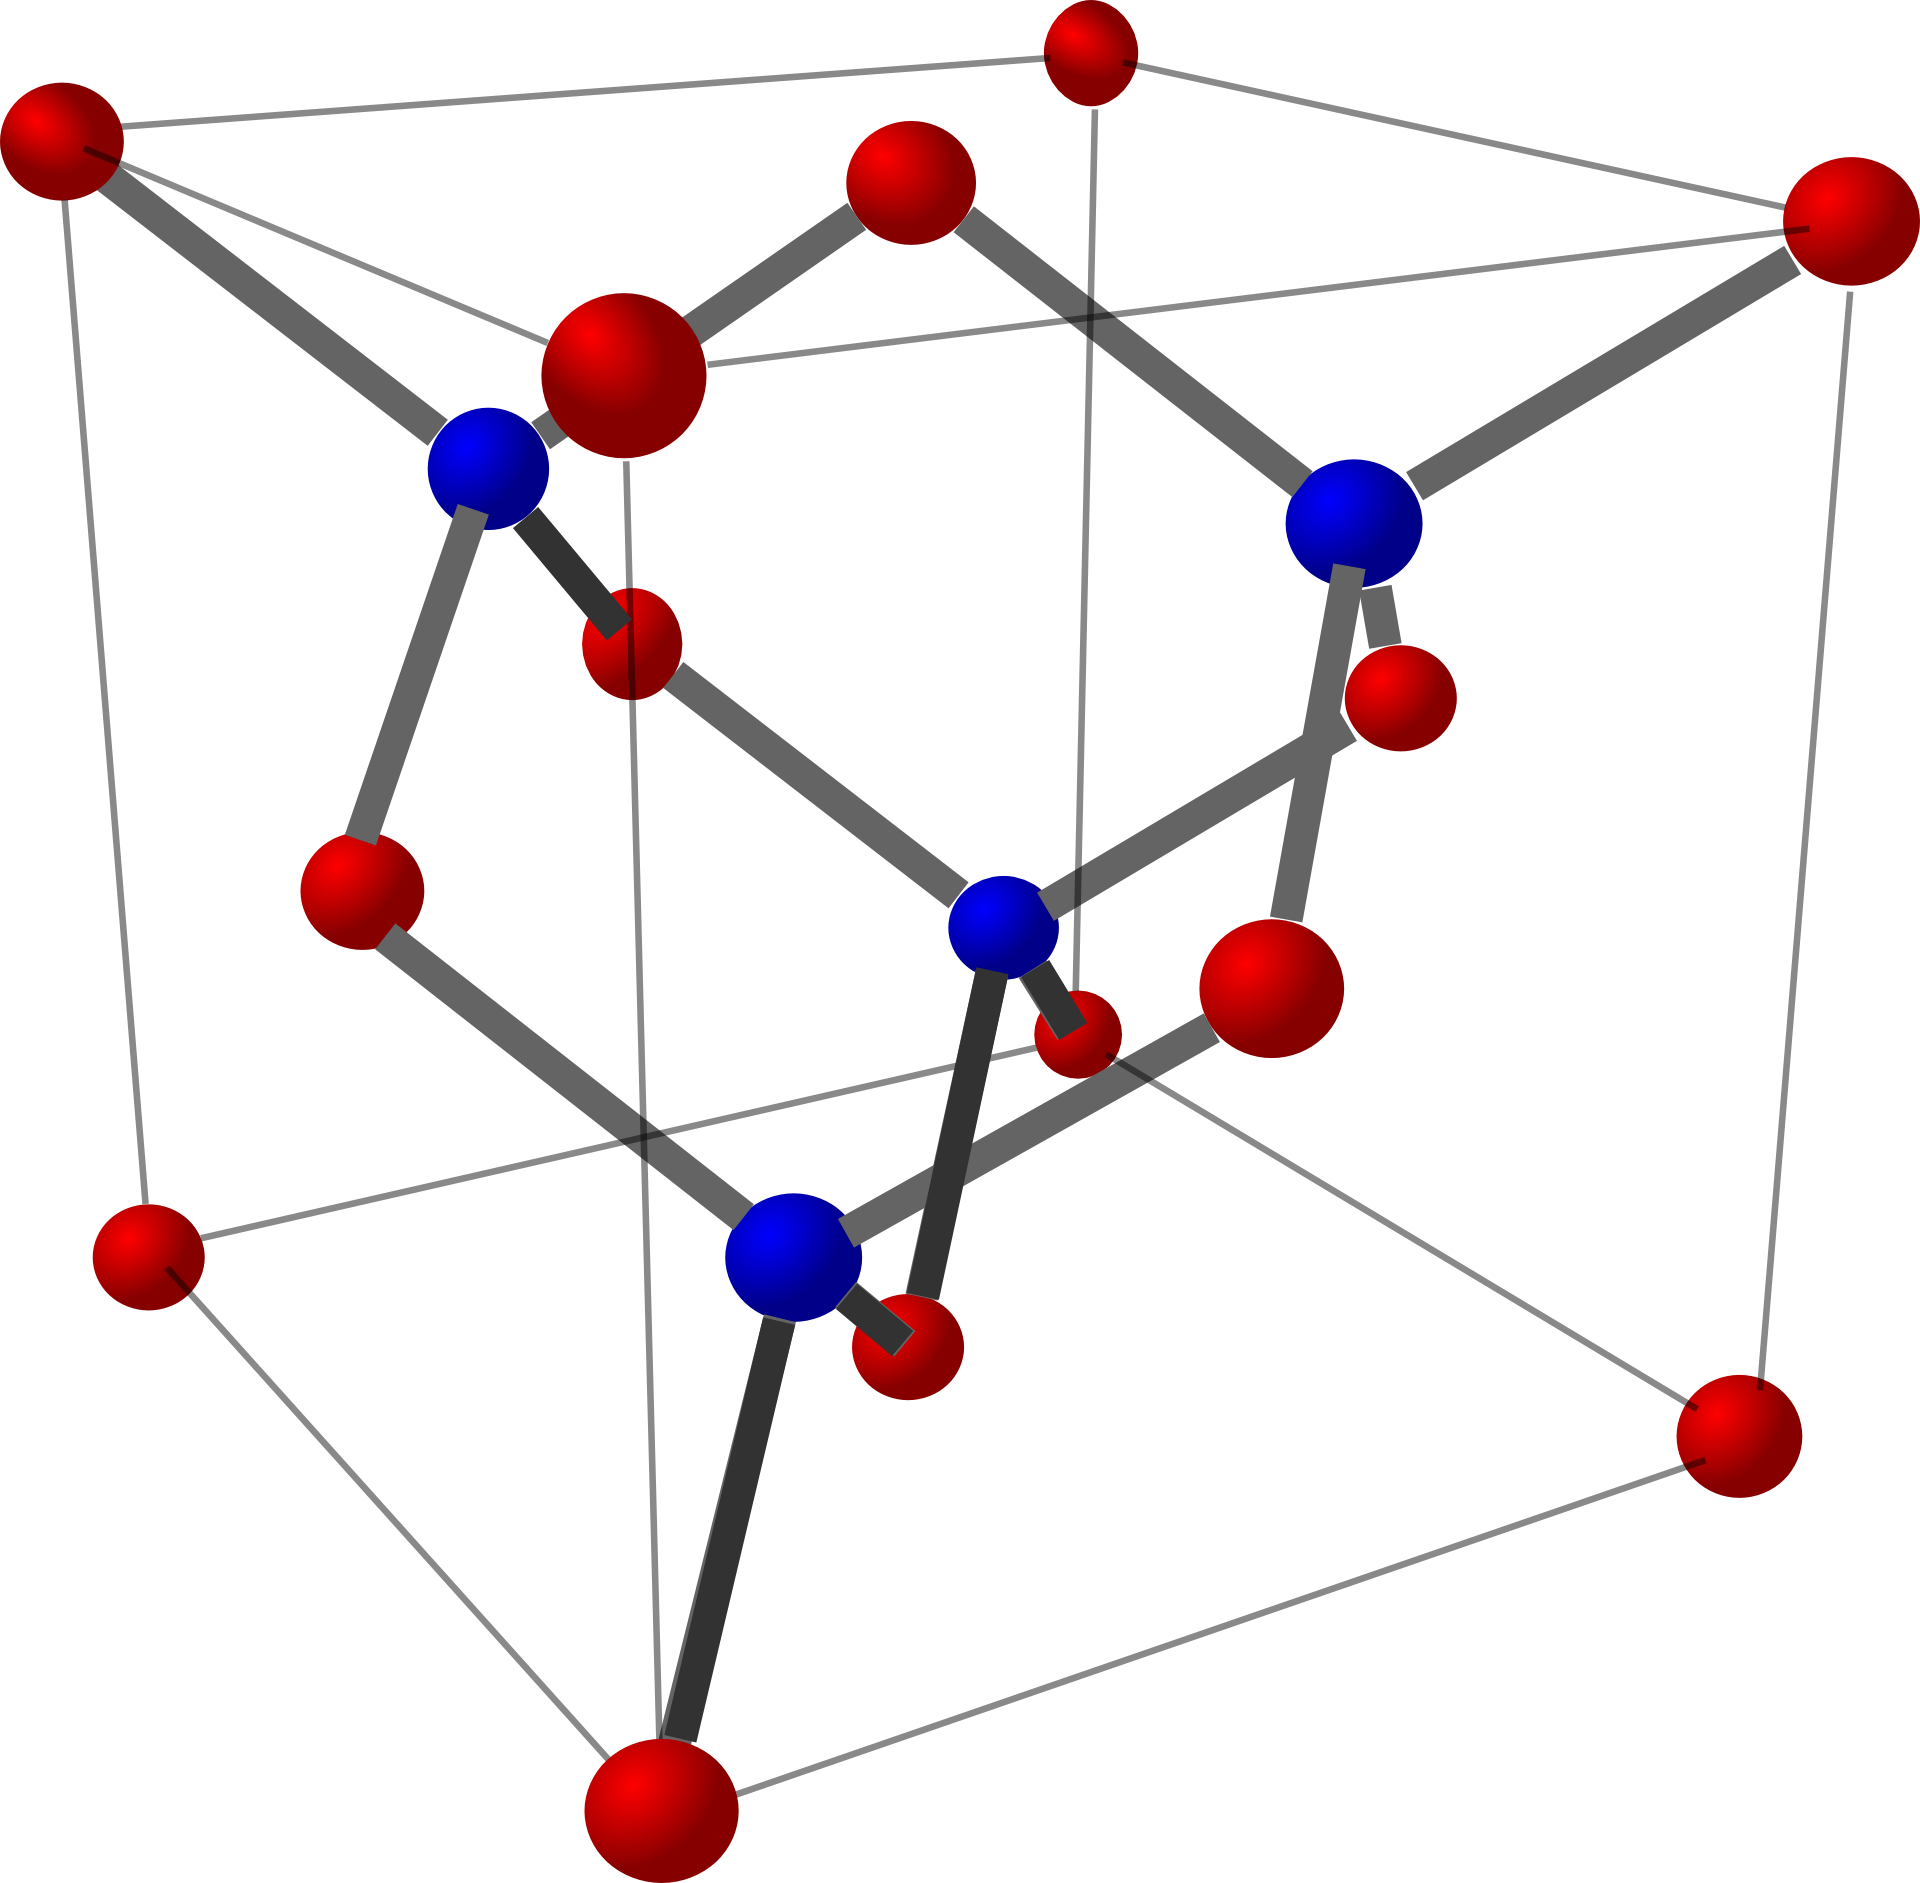 2. Atomic Structure and Bonding – Our Science Class